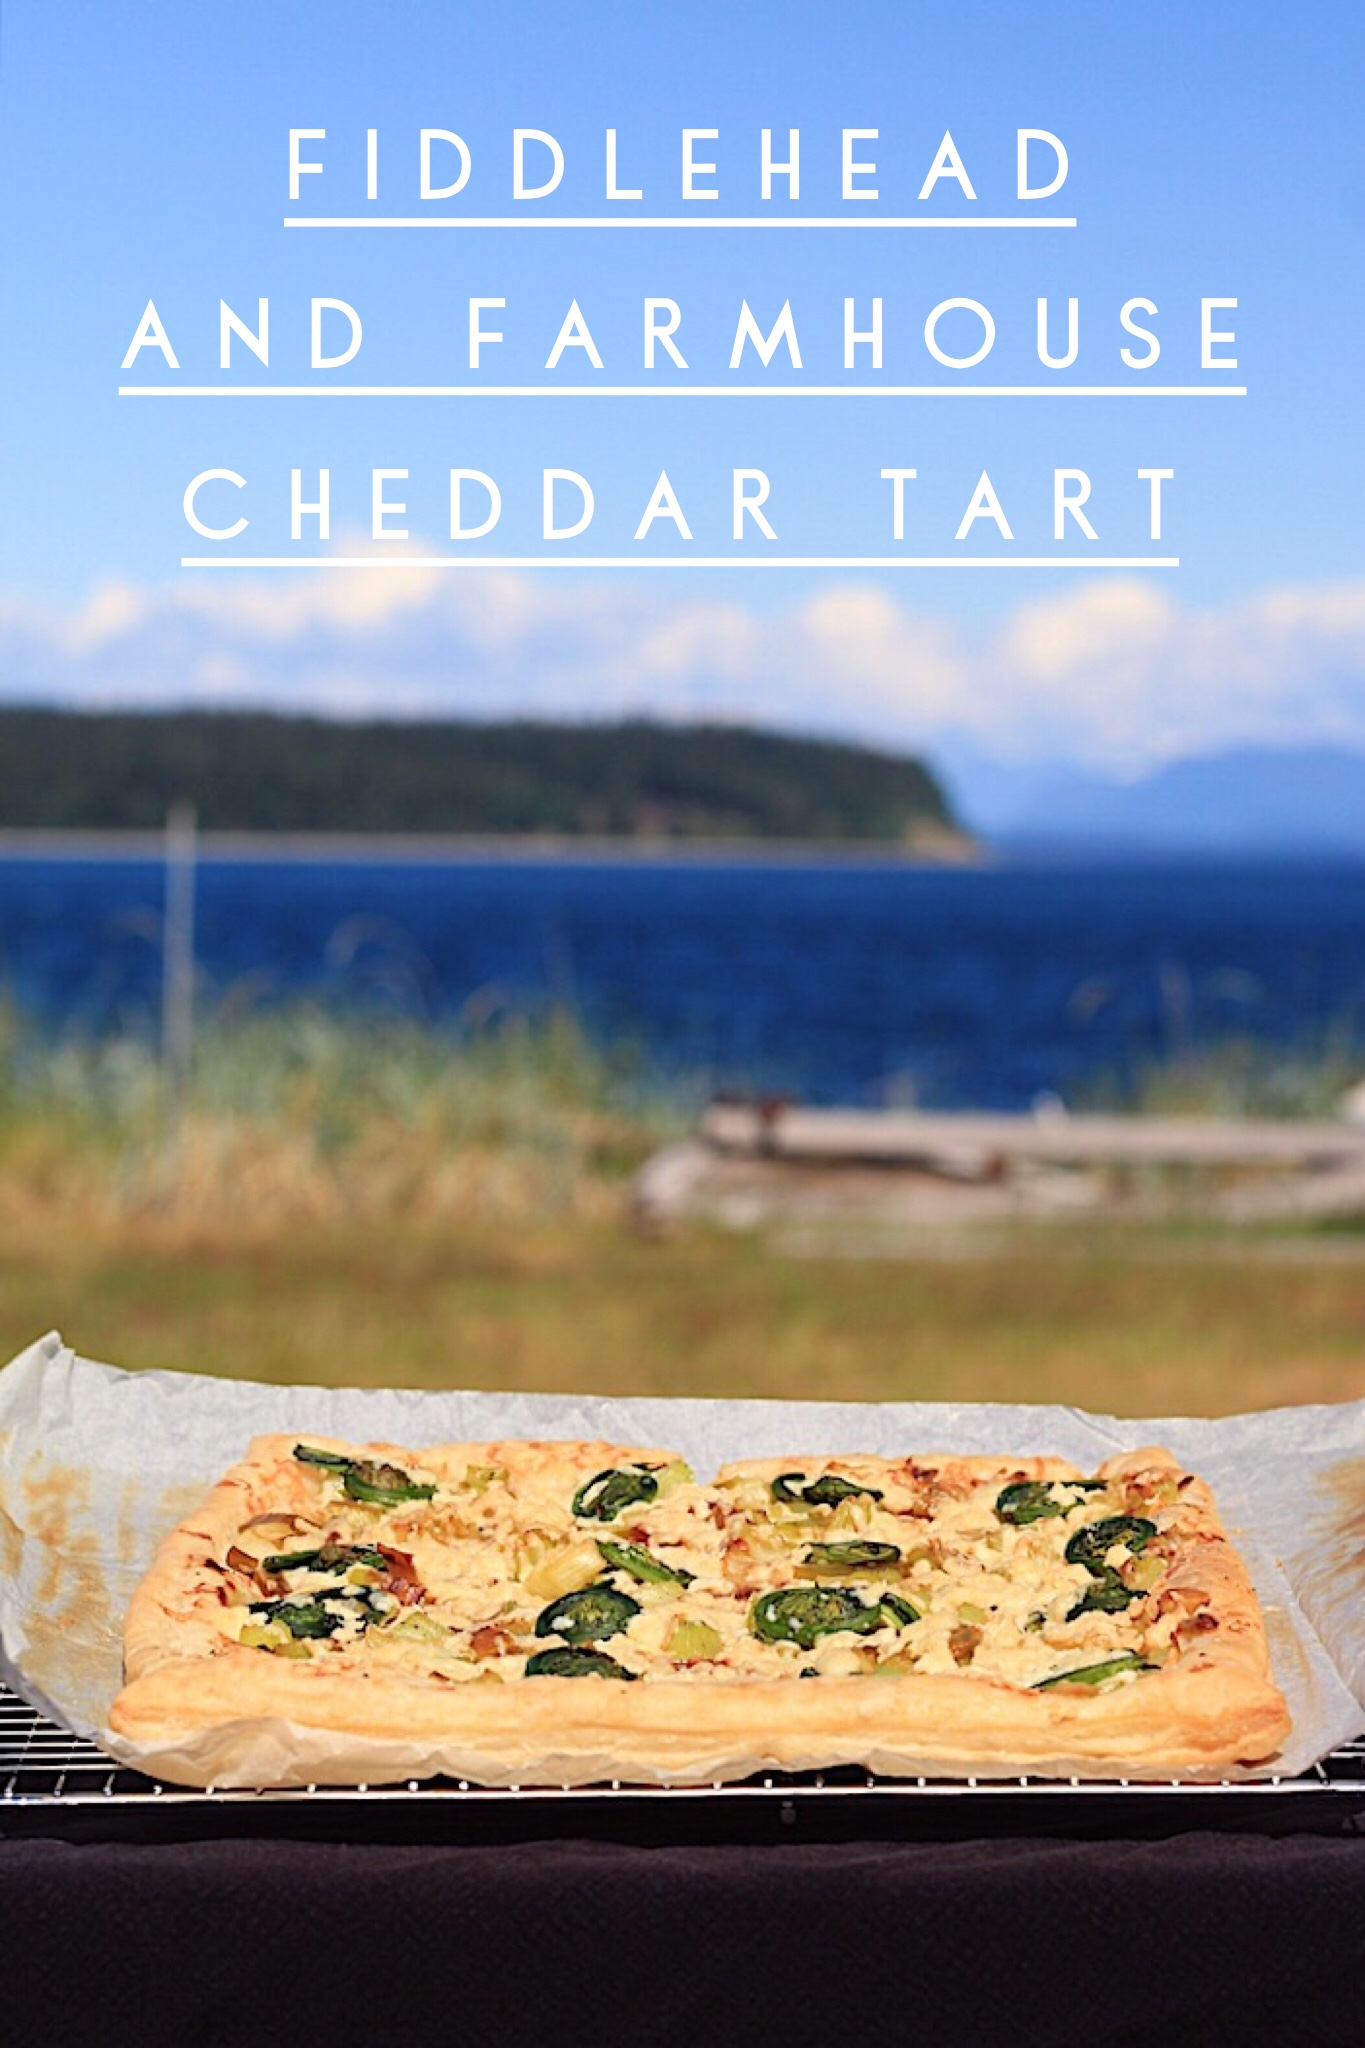 Easy and Delicious Fiddlehead and Farmhouse Cheddar Tart